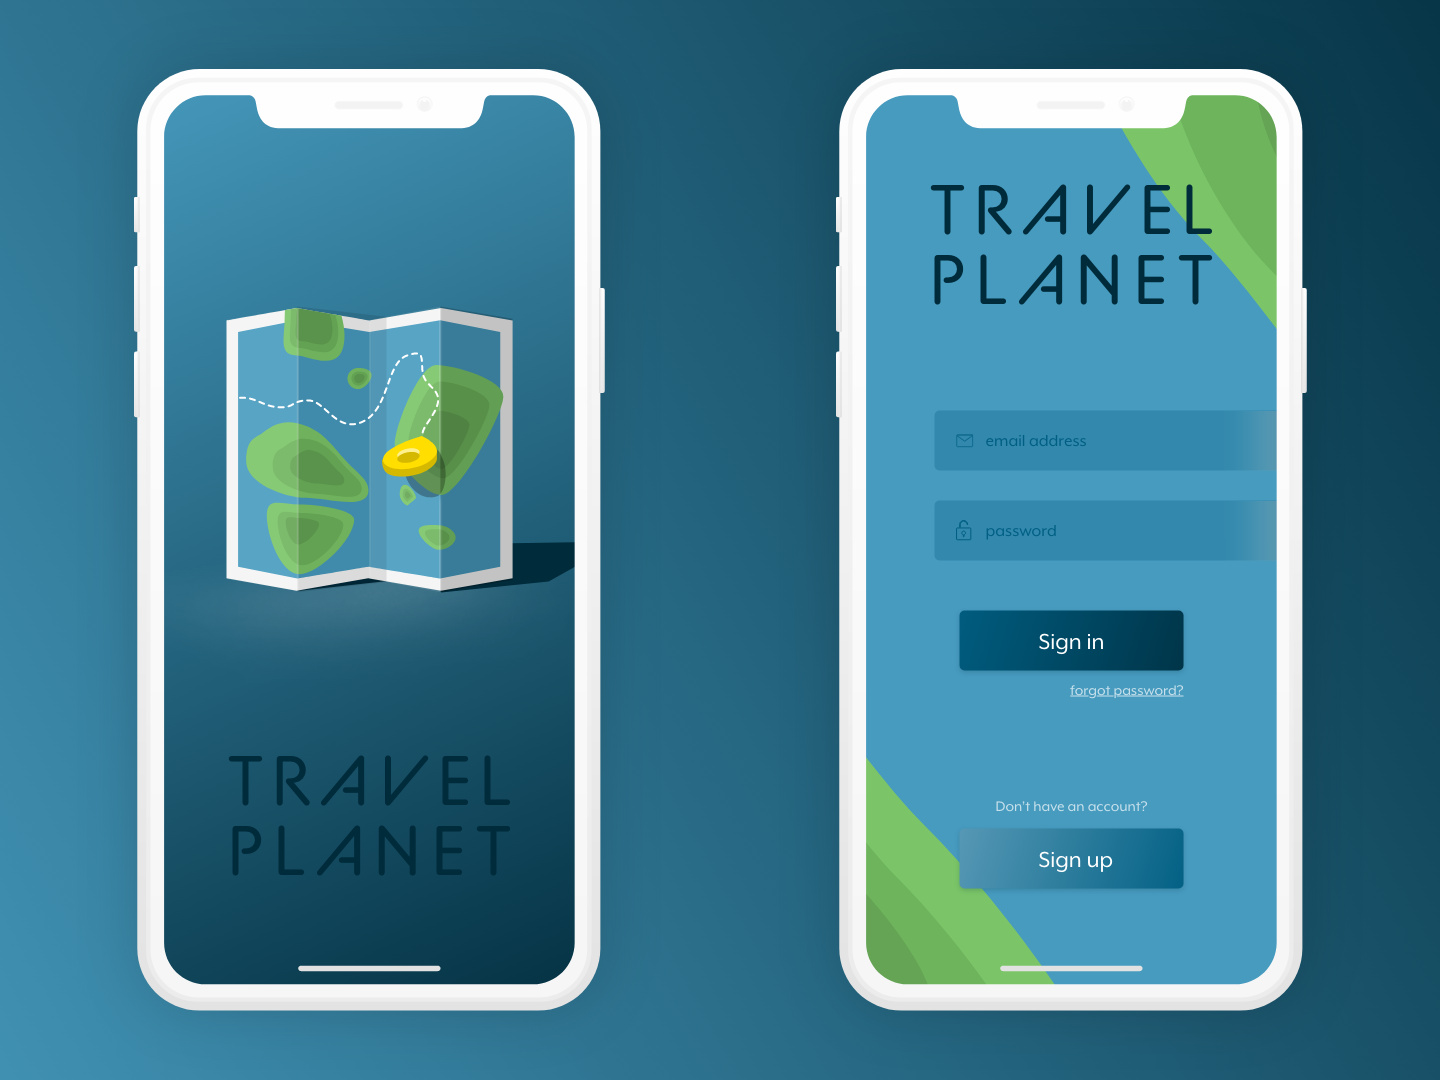 Splash screen and login view map creativechallenge travel app mobile ui experience design adobe adobexd